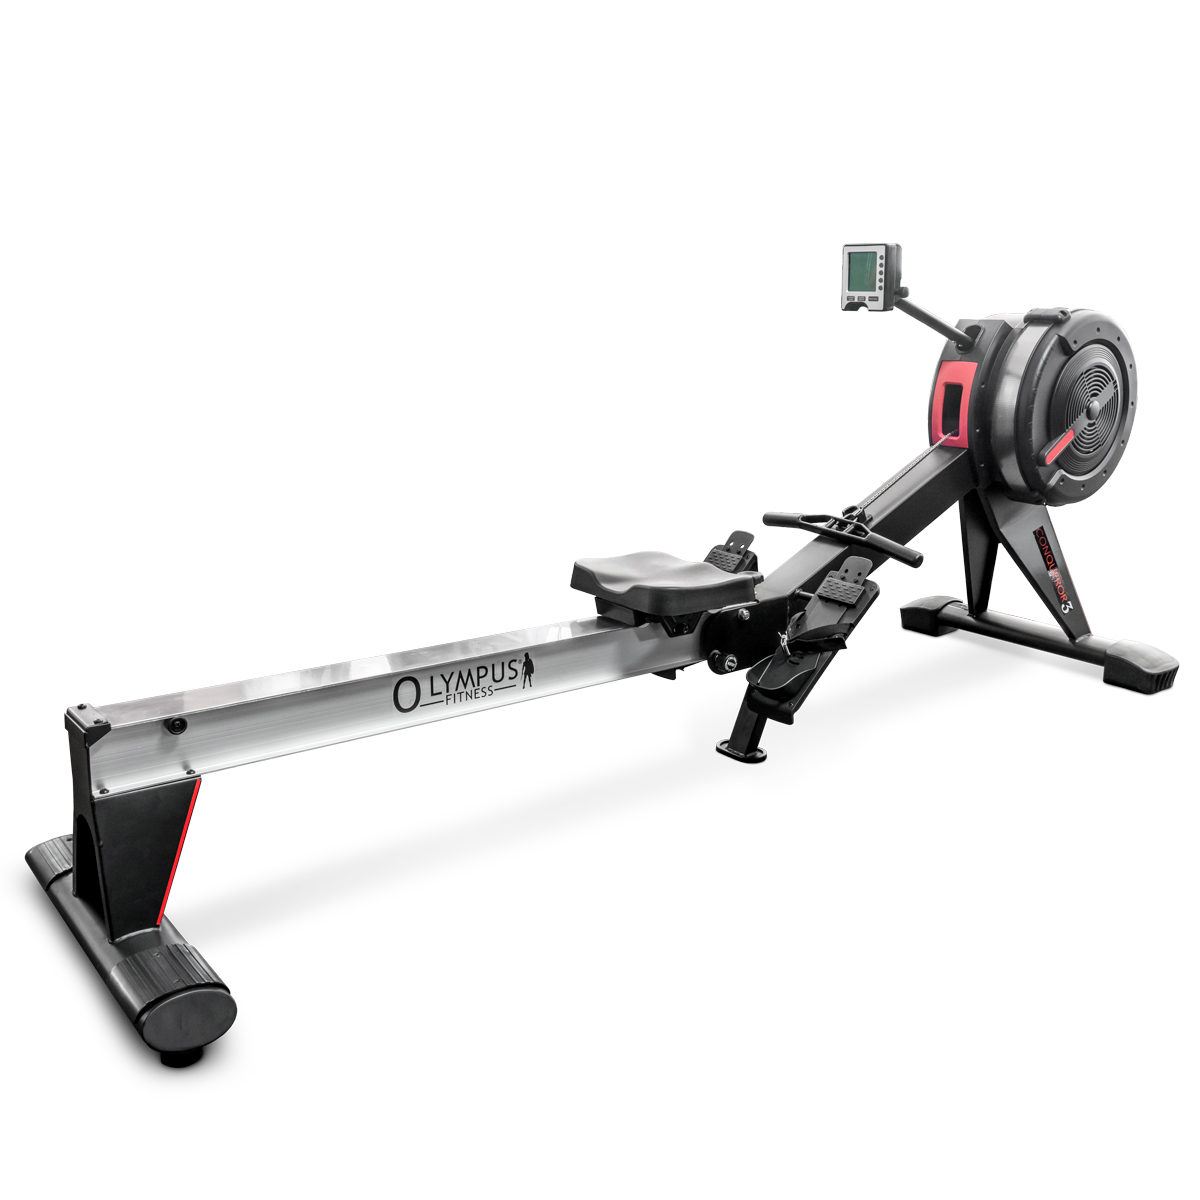 ROWING MACHINE CONQUEROR by Renouf Fitness